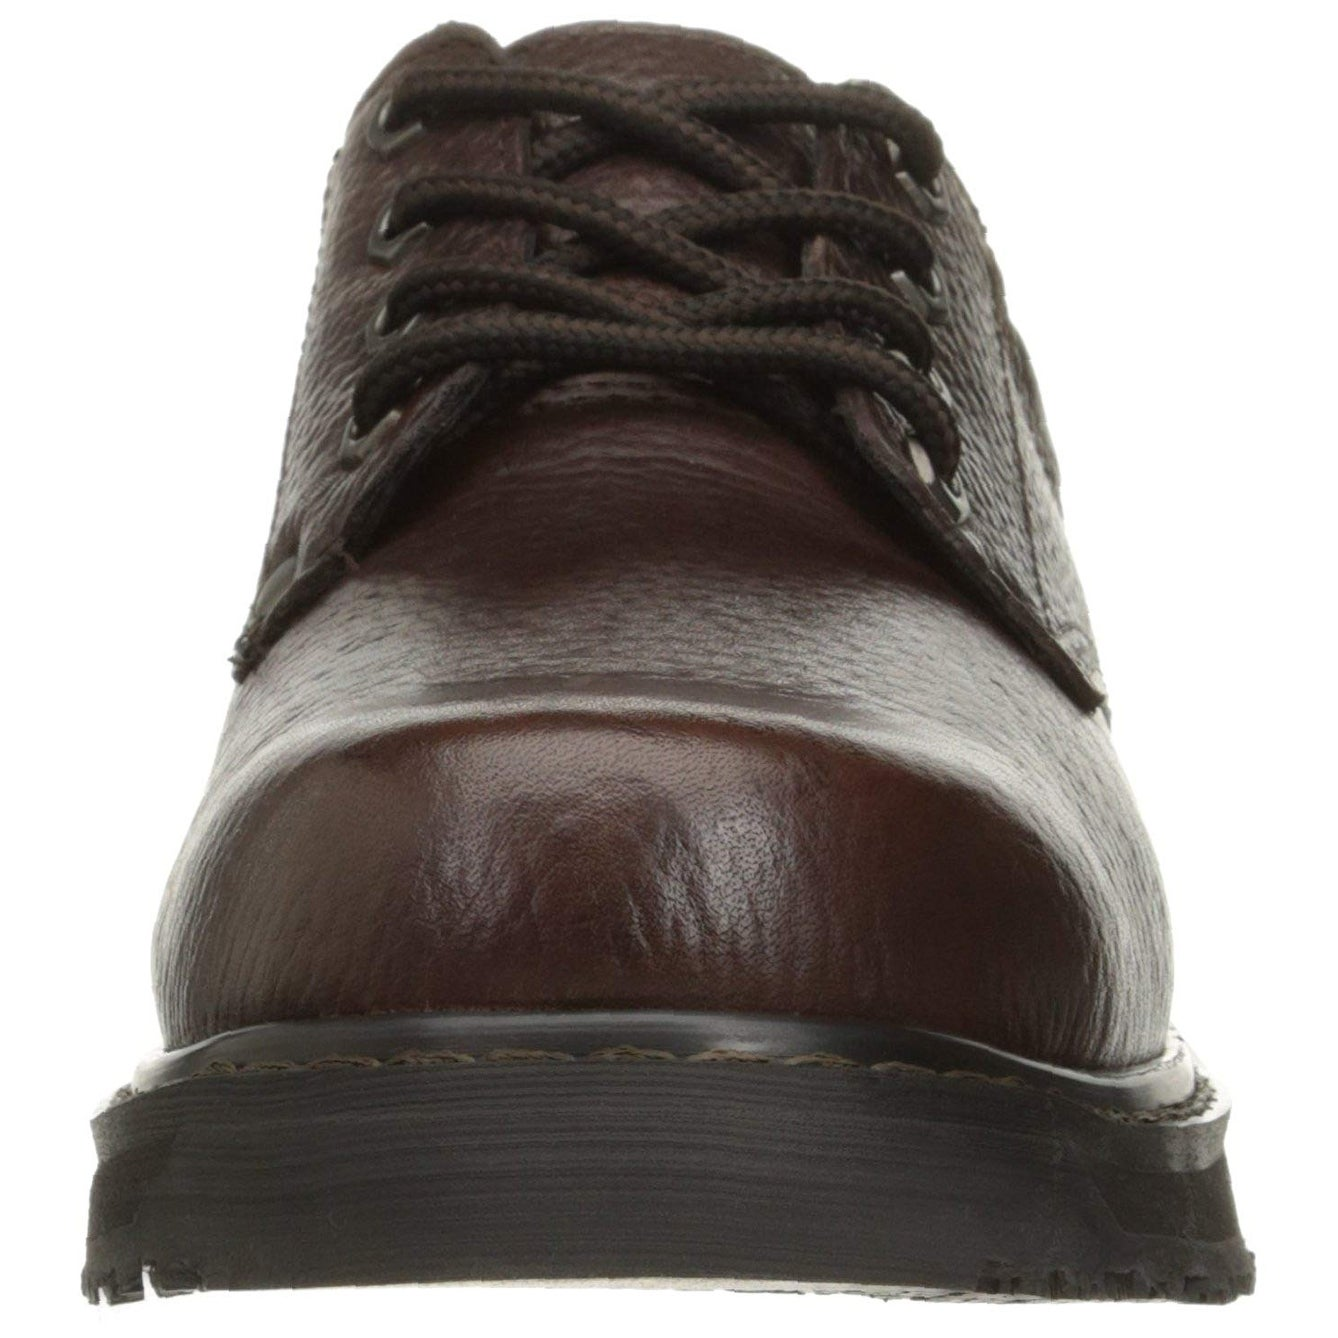 d245d93b709e Shop Dr. Scholl s Shoes Men s Harrington Ii Work Shoe - 10 - Free Shipping  Today - Overstock - 27221200